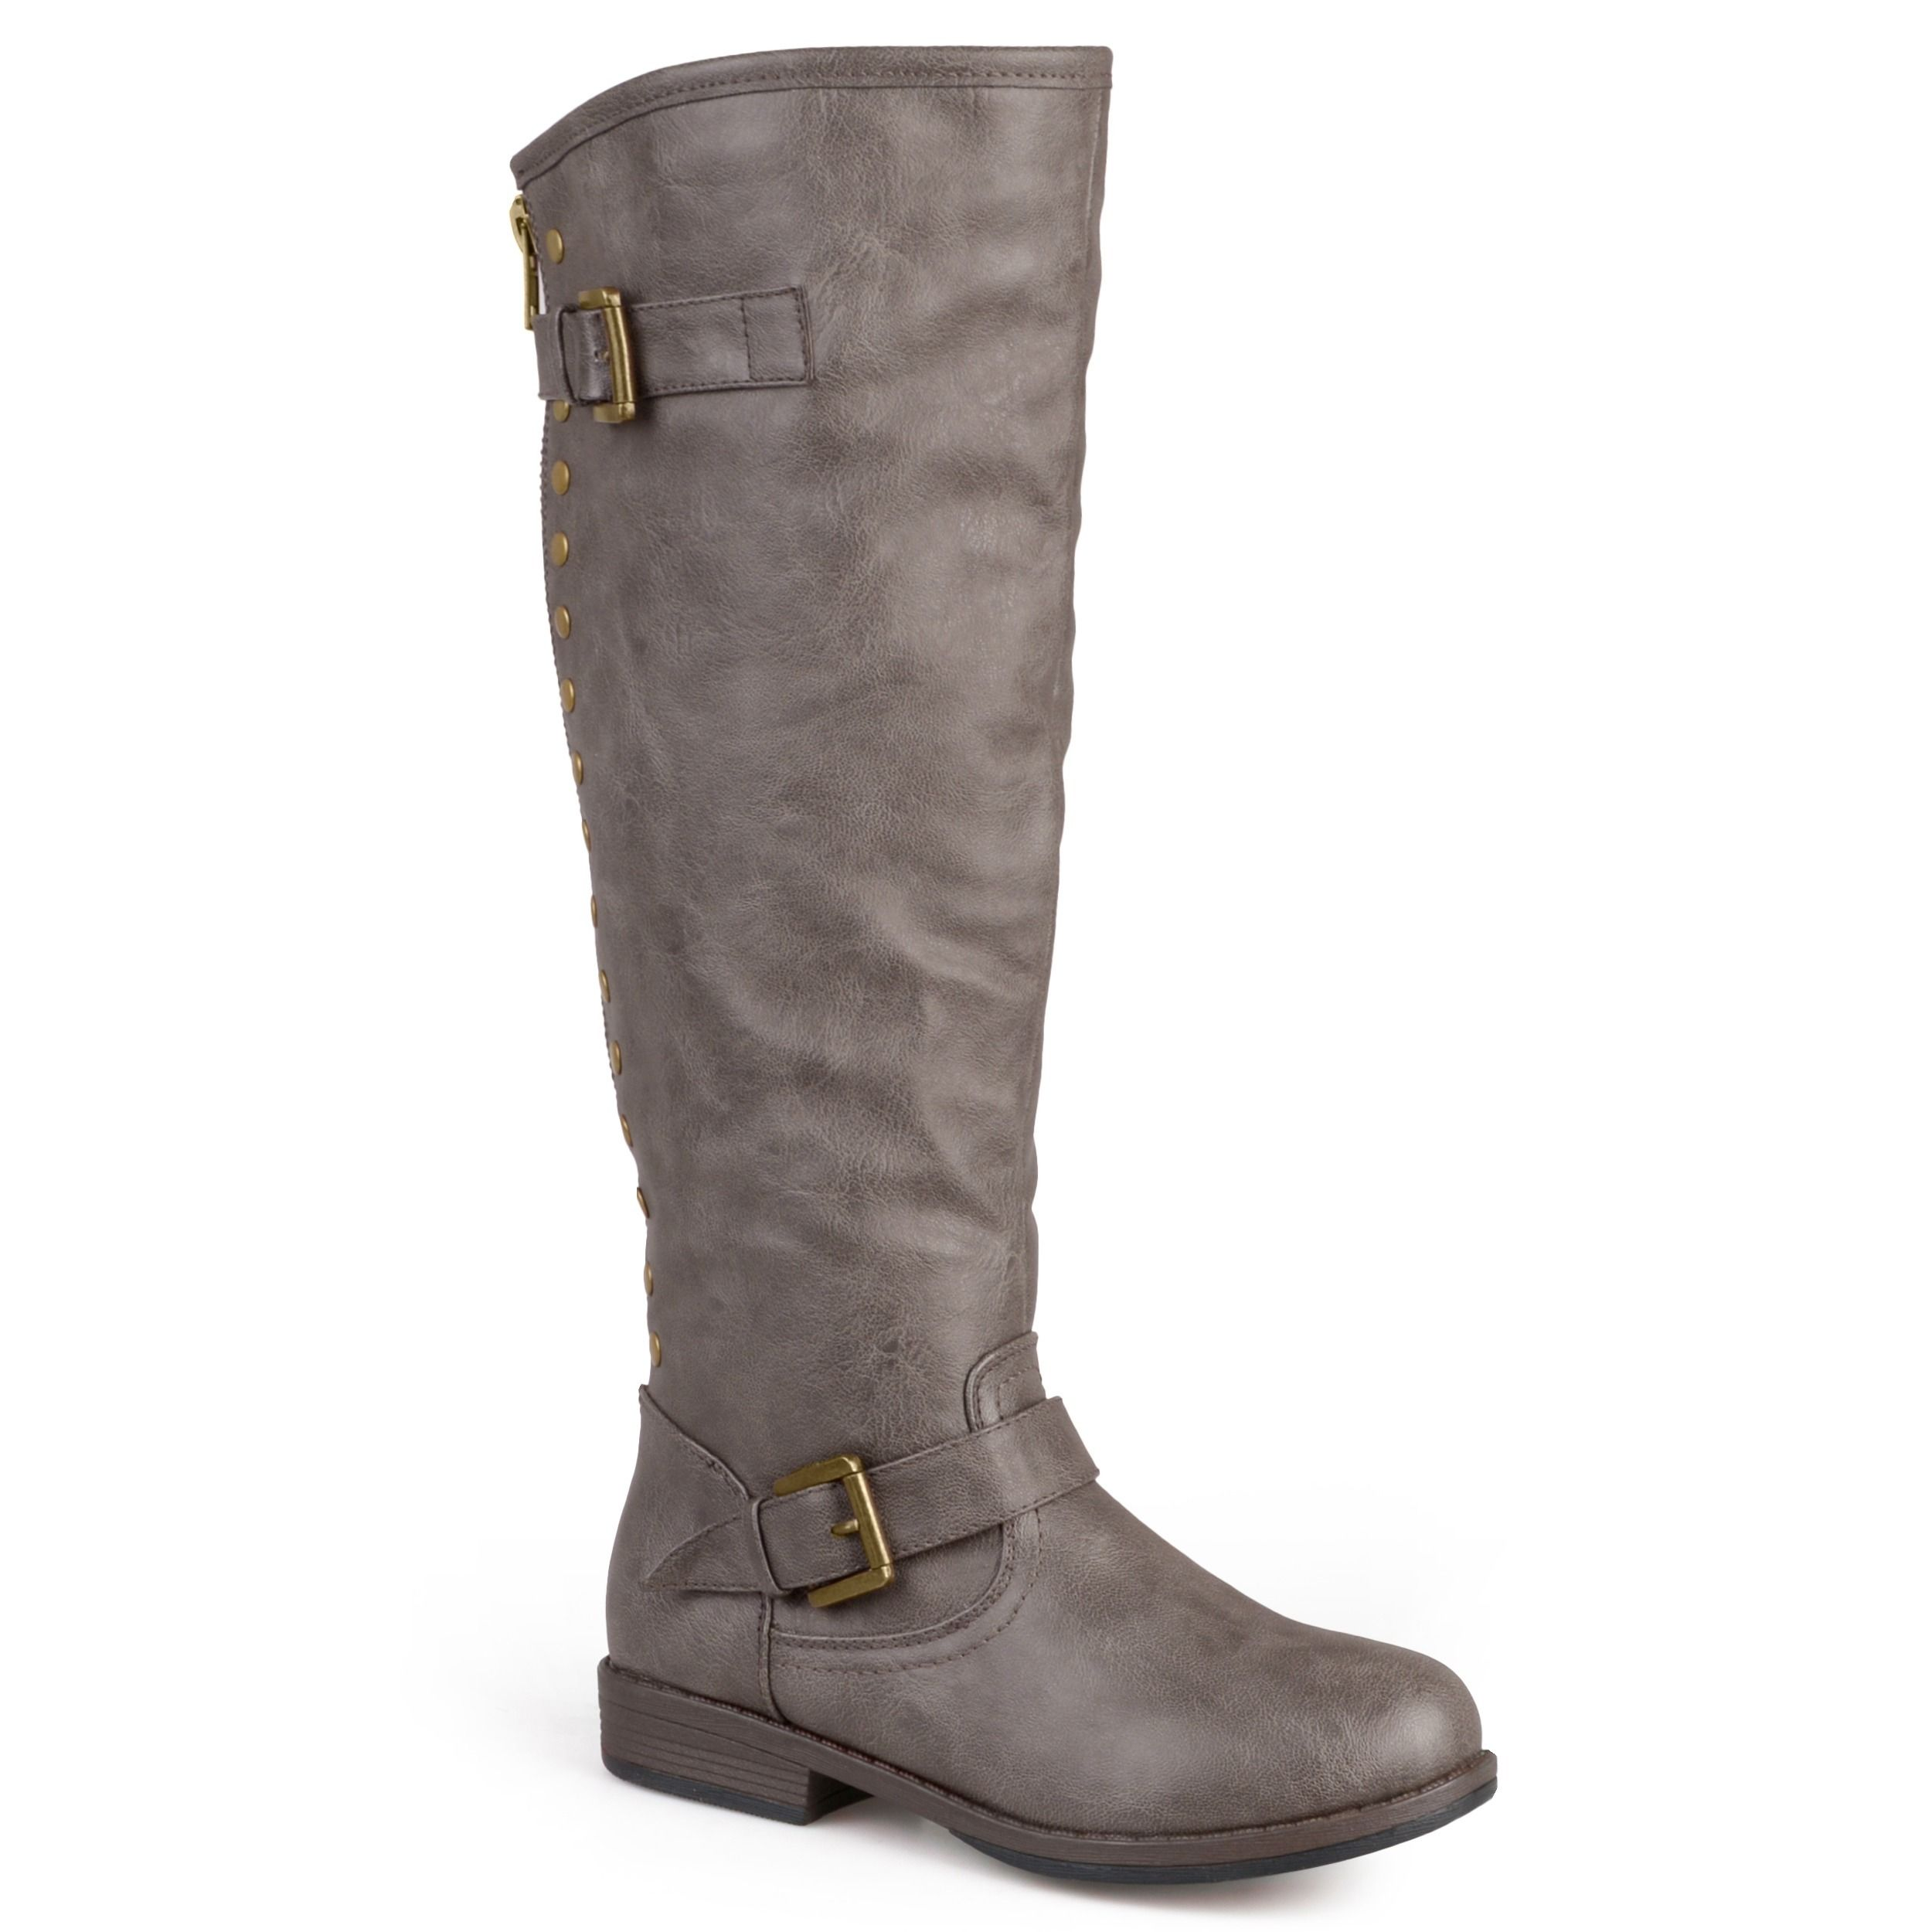 The perfect knee high riding boot for winter.